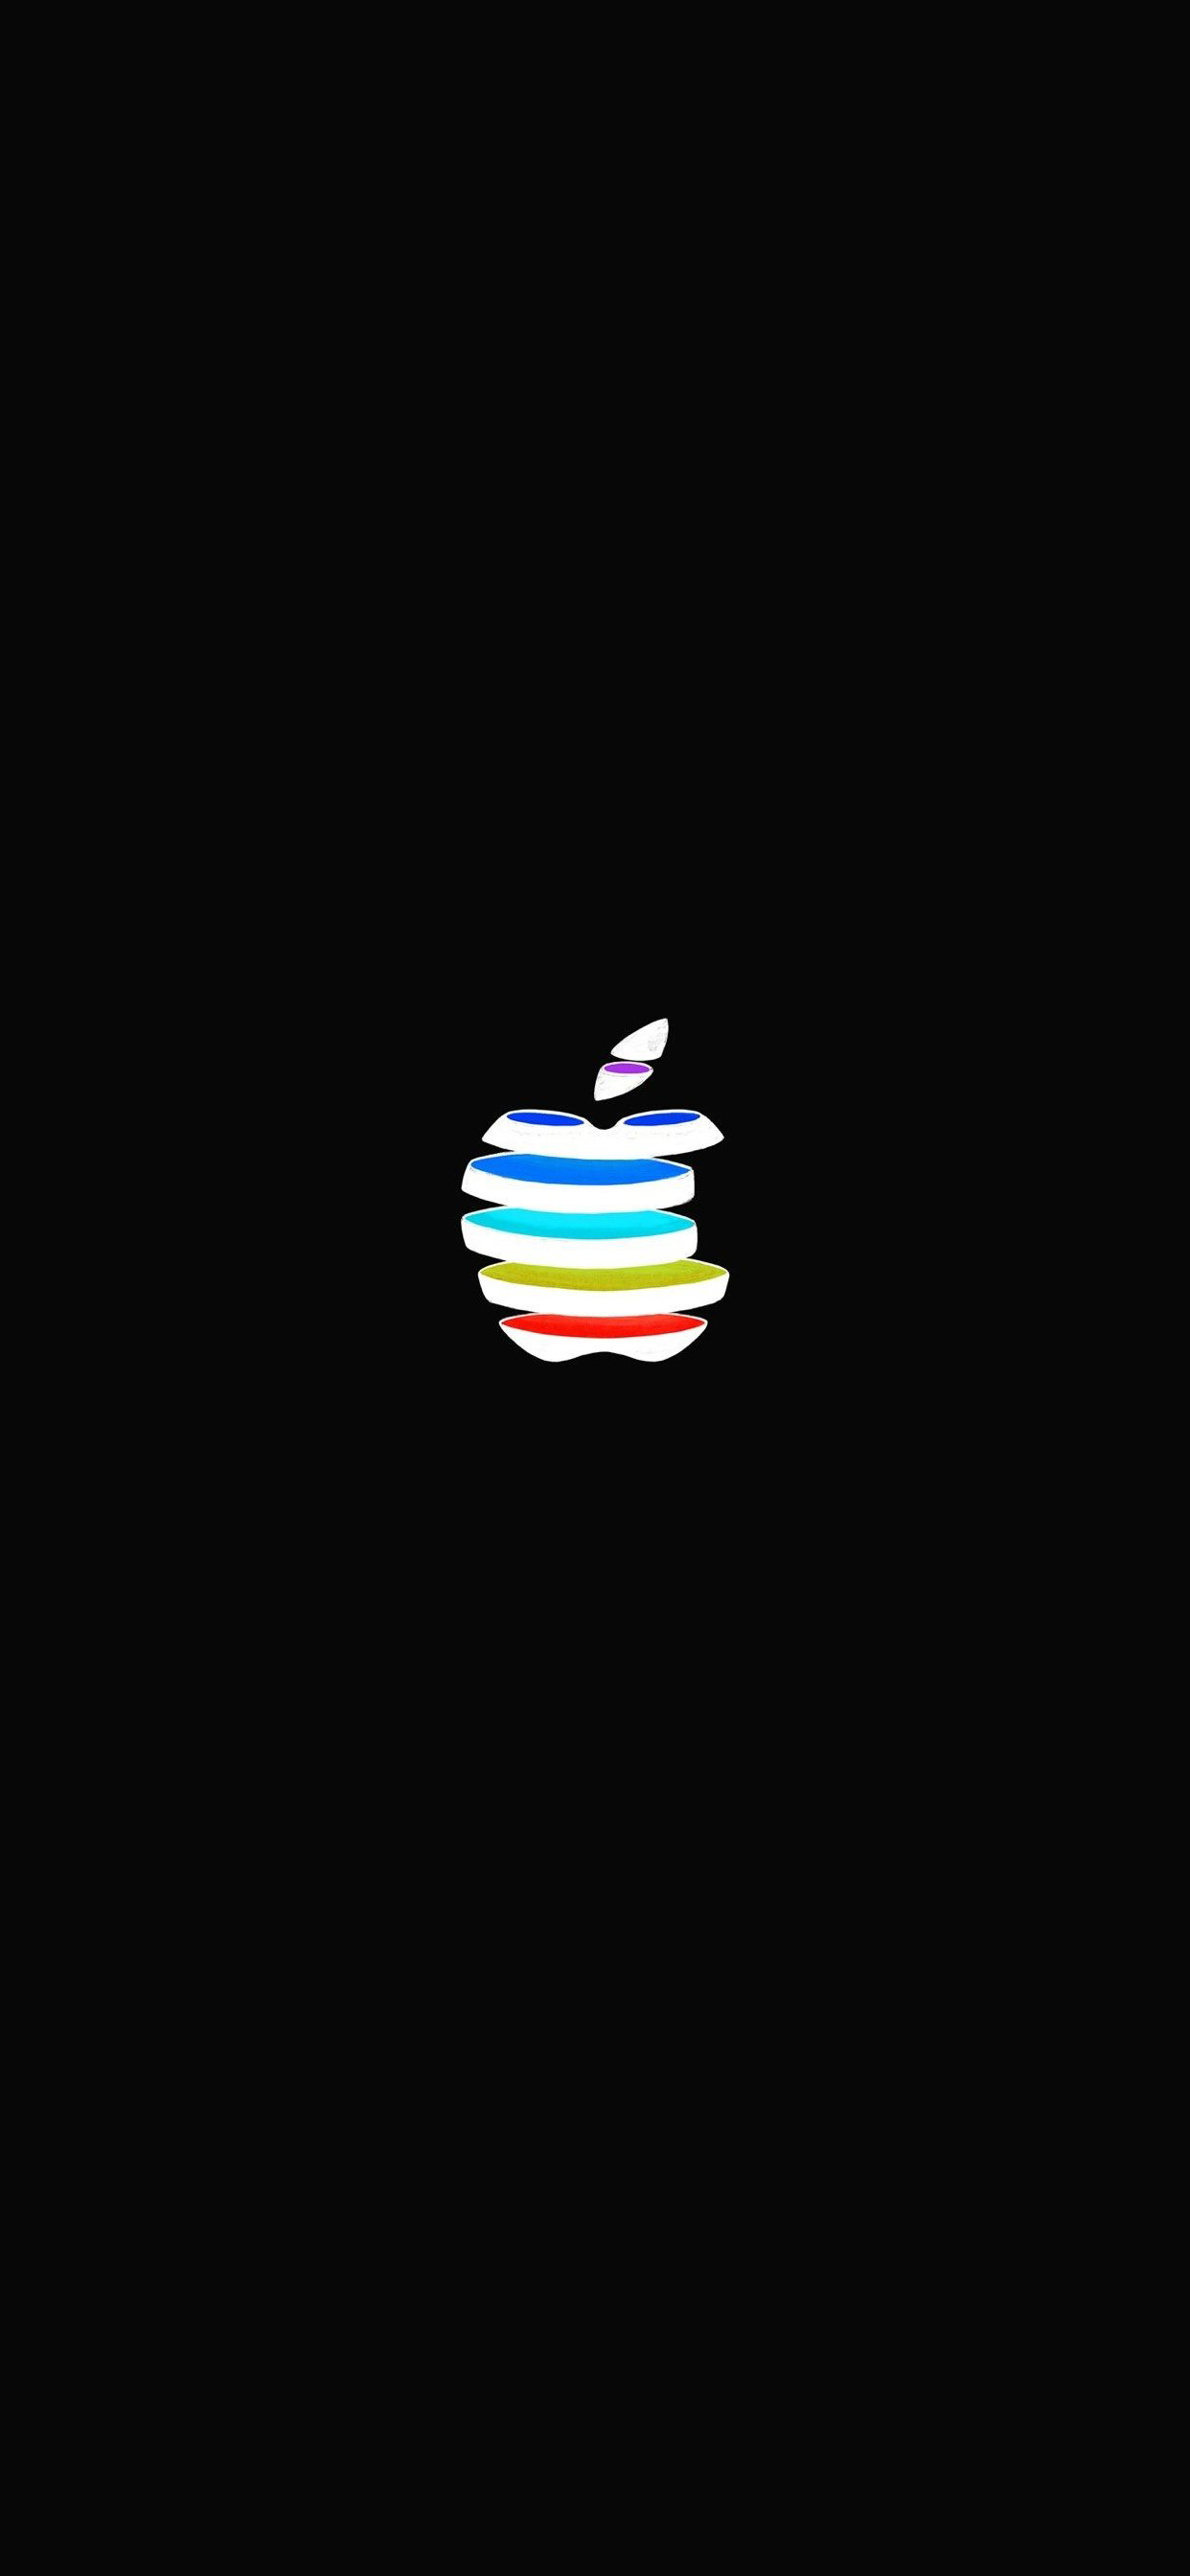 iPhone wallpaper apple logo 16 Apple logo